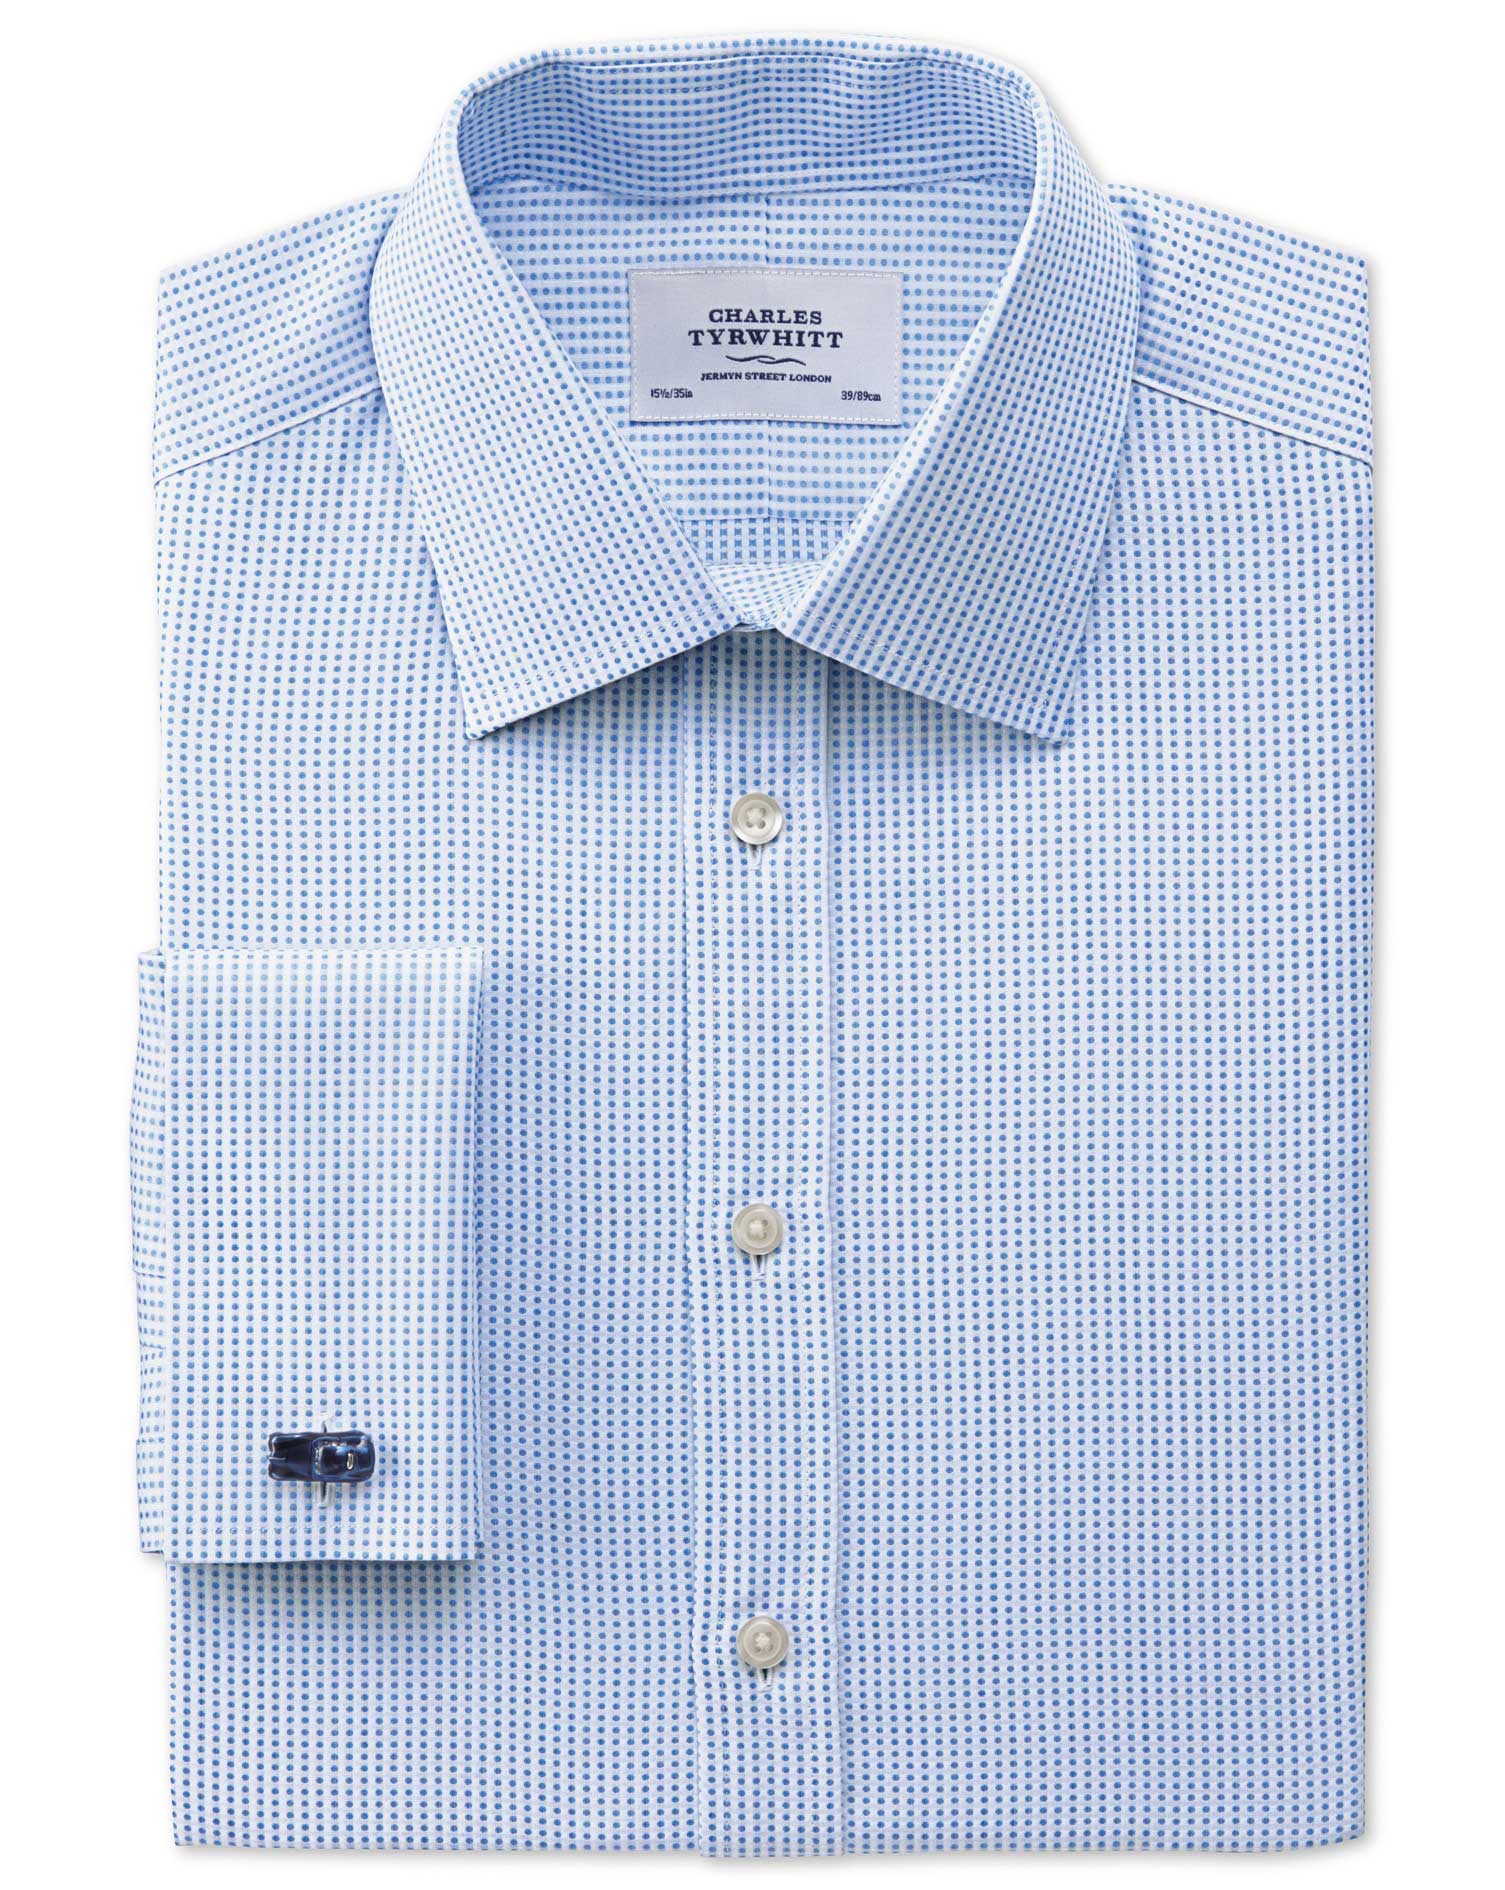 Classic Fit Pima Cotton Double-Faced Sky Blue Formal Shirt Single Cuff Size 16/38 by Charles Tyrwhit